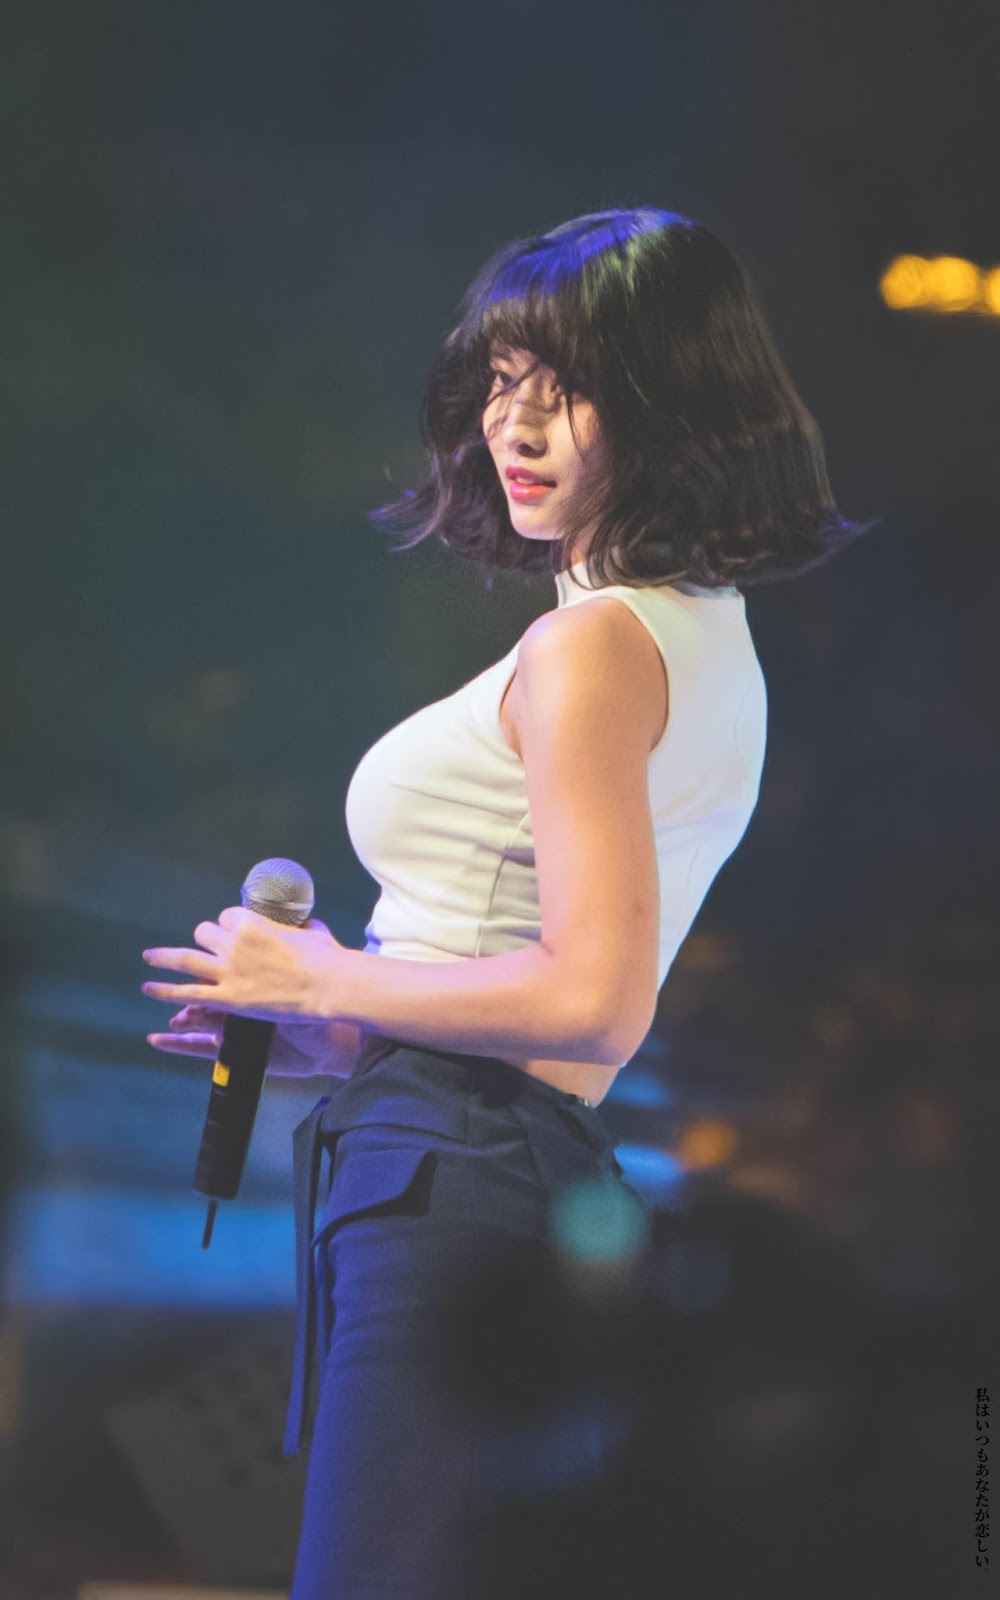 twice momo drops jaws with her voluminous figure daily